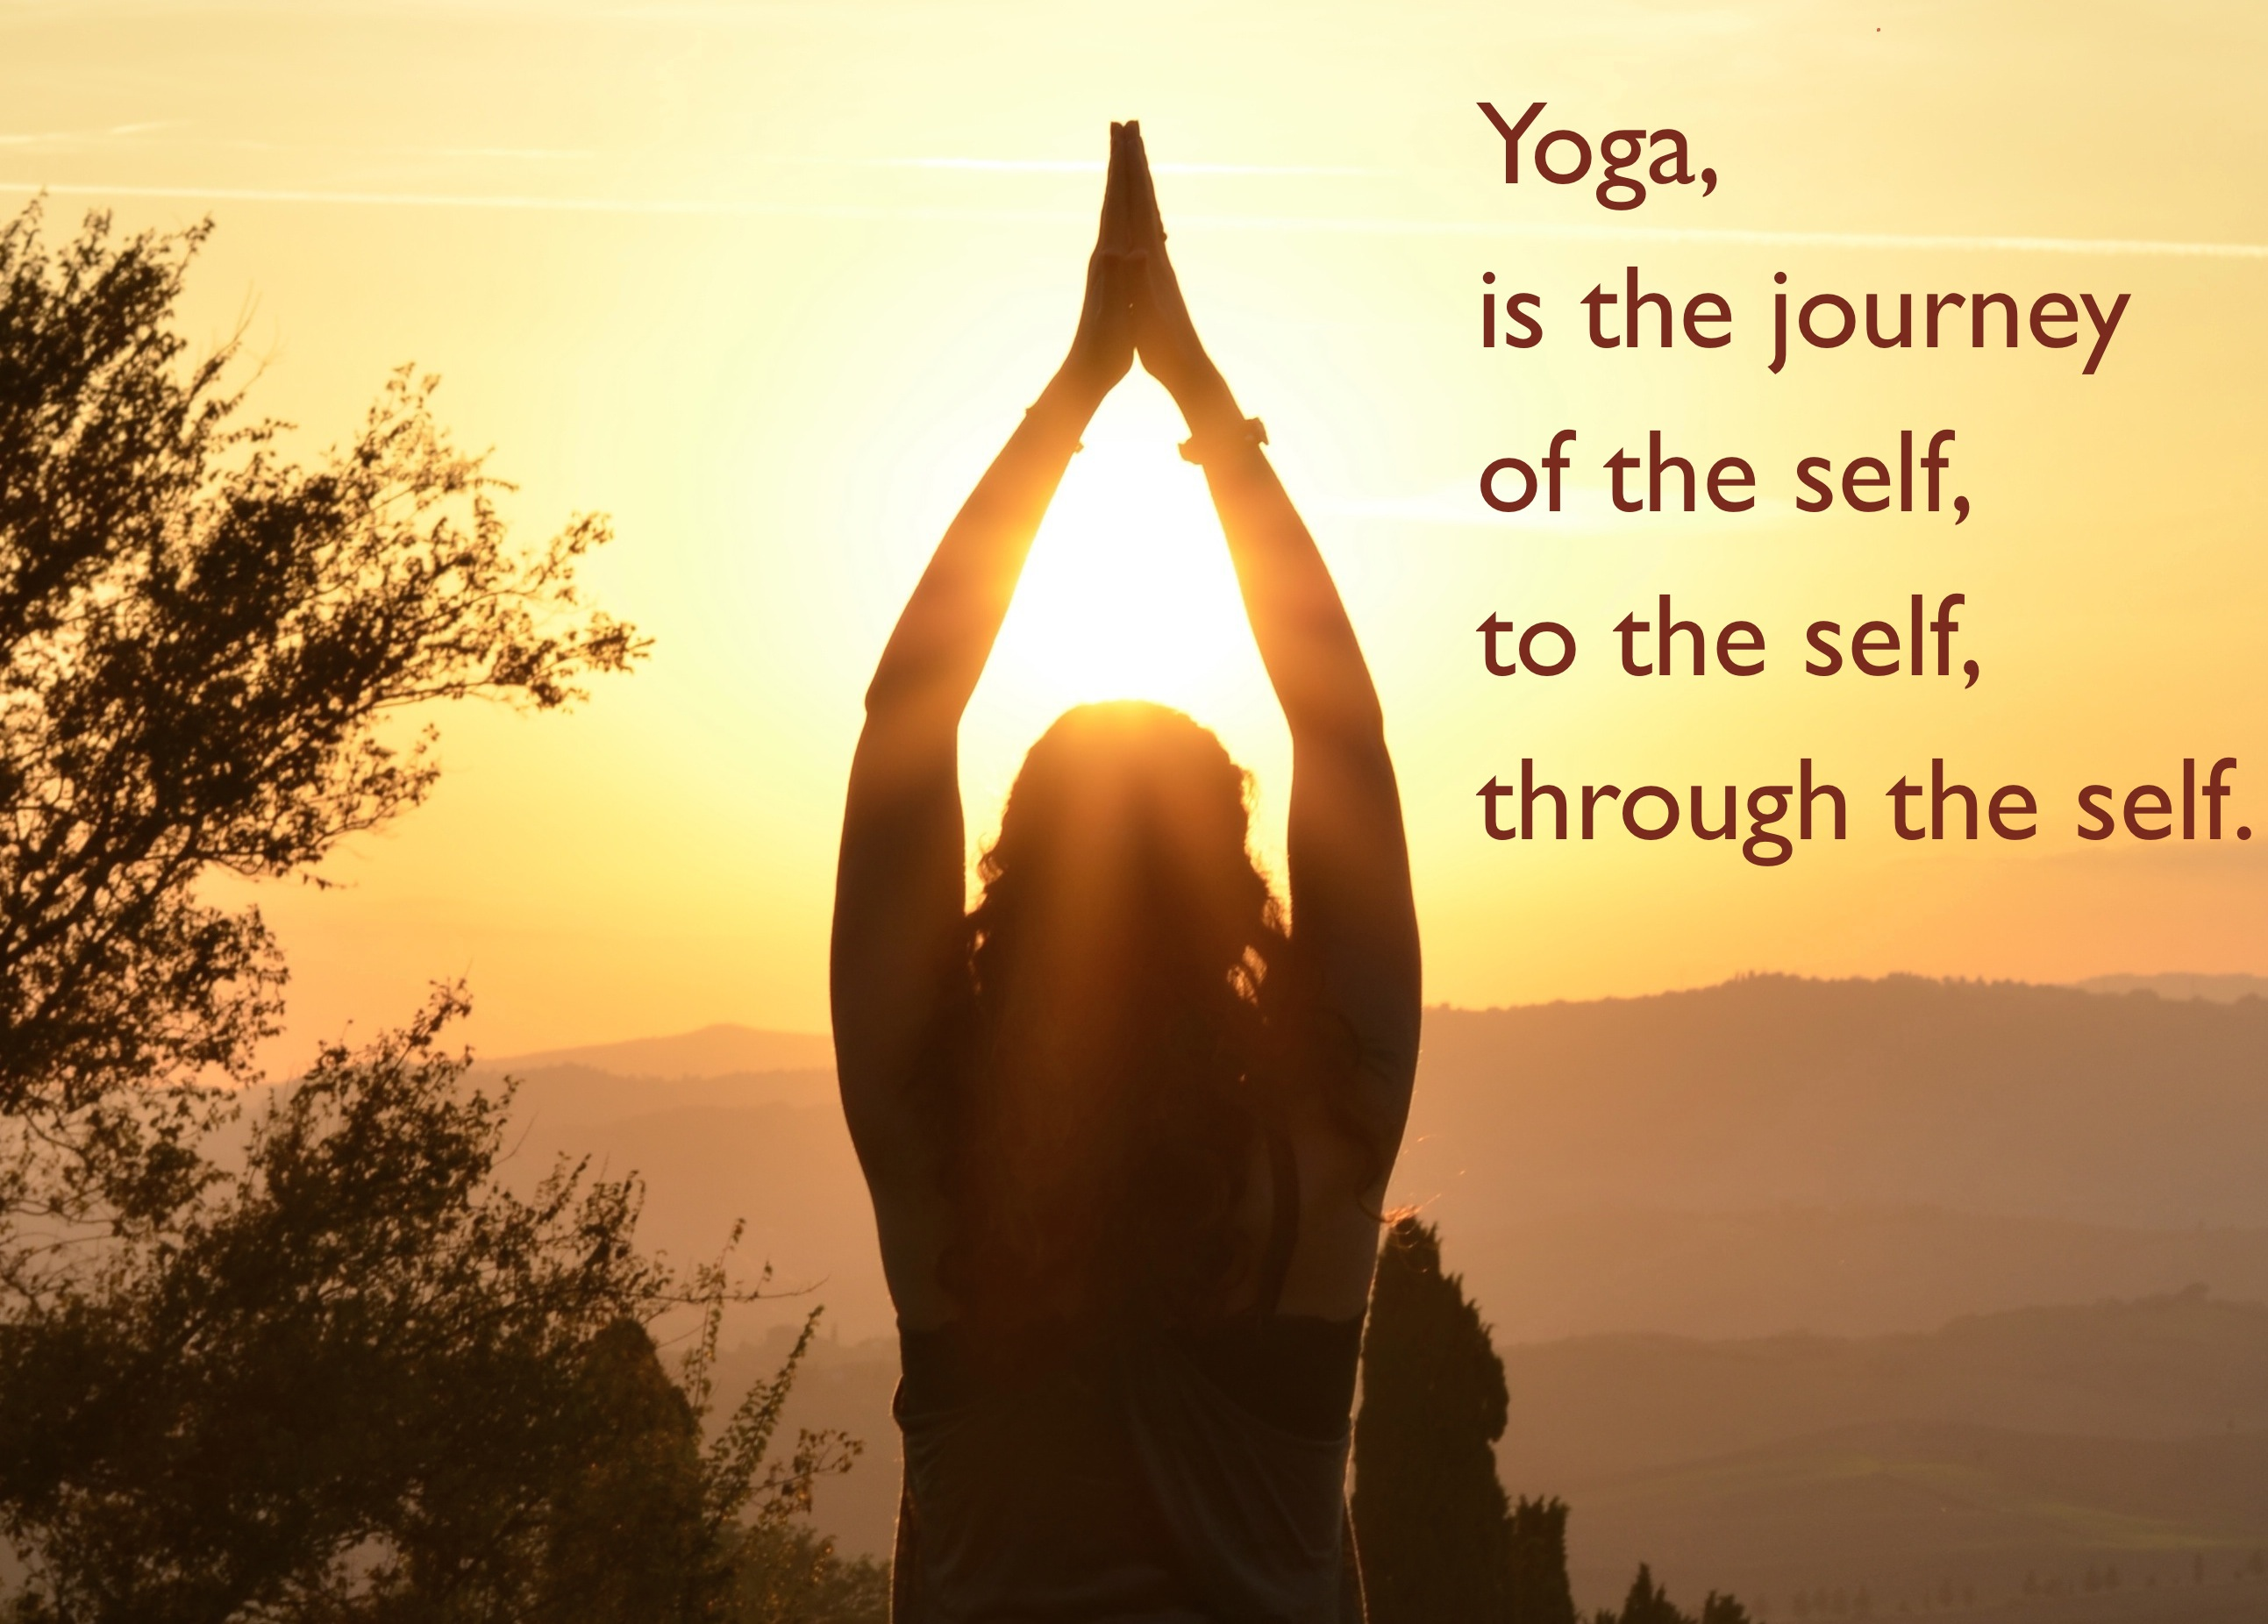 yoga quotes about life - photo #5